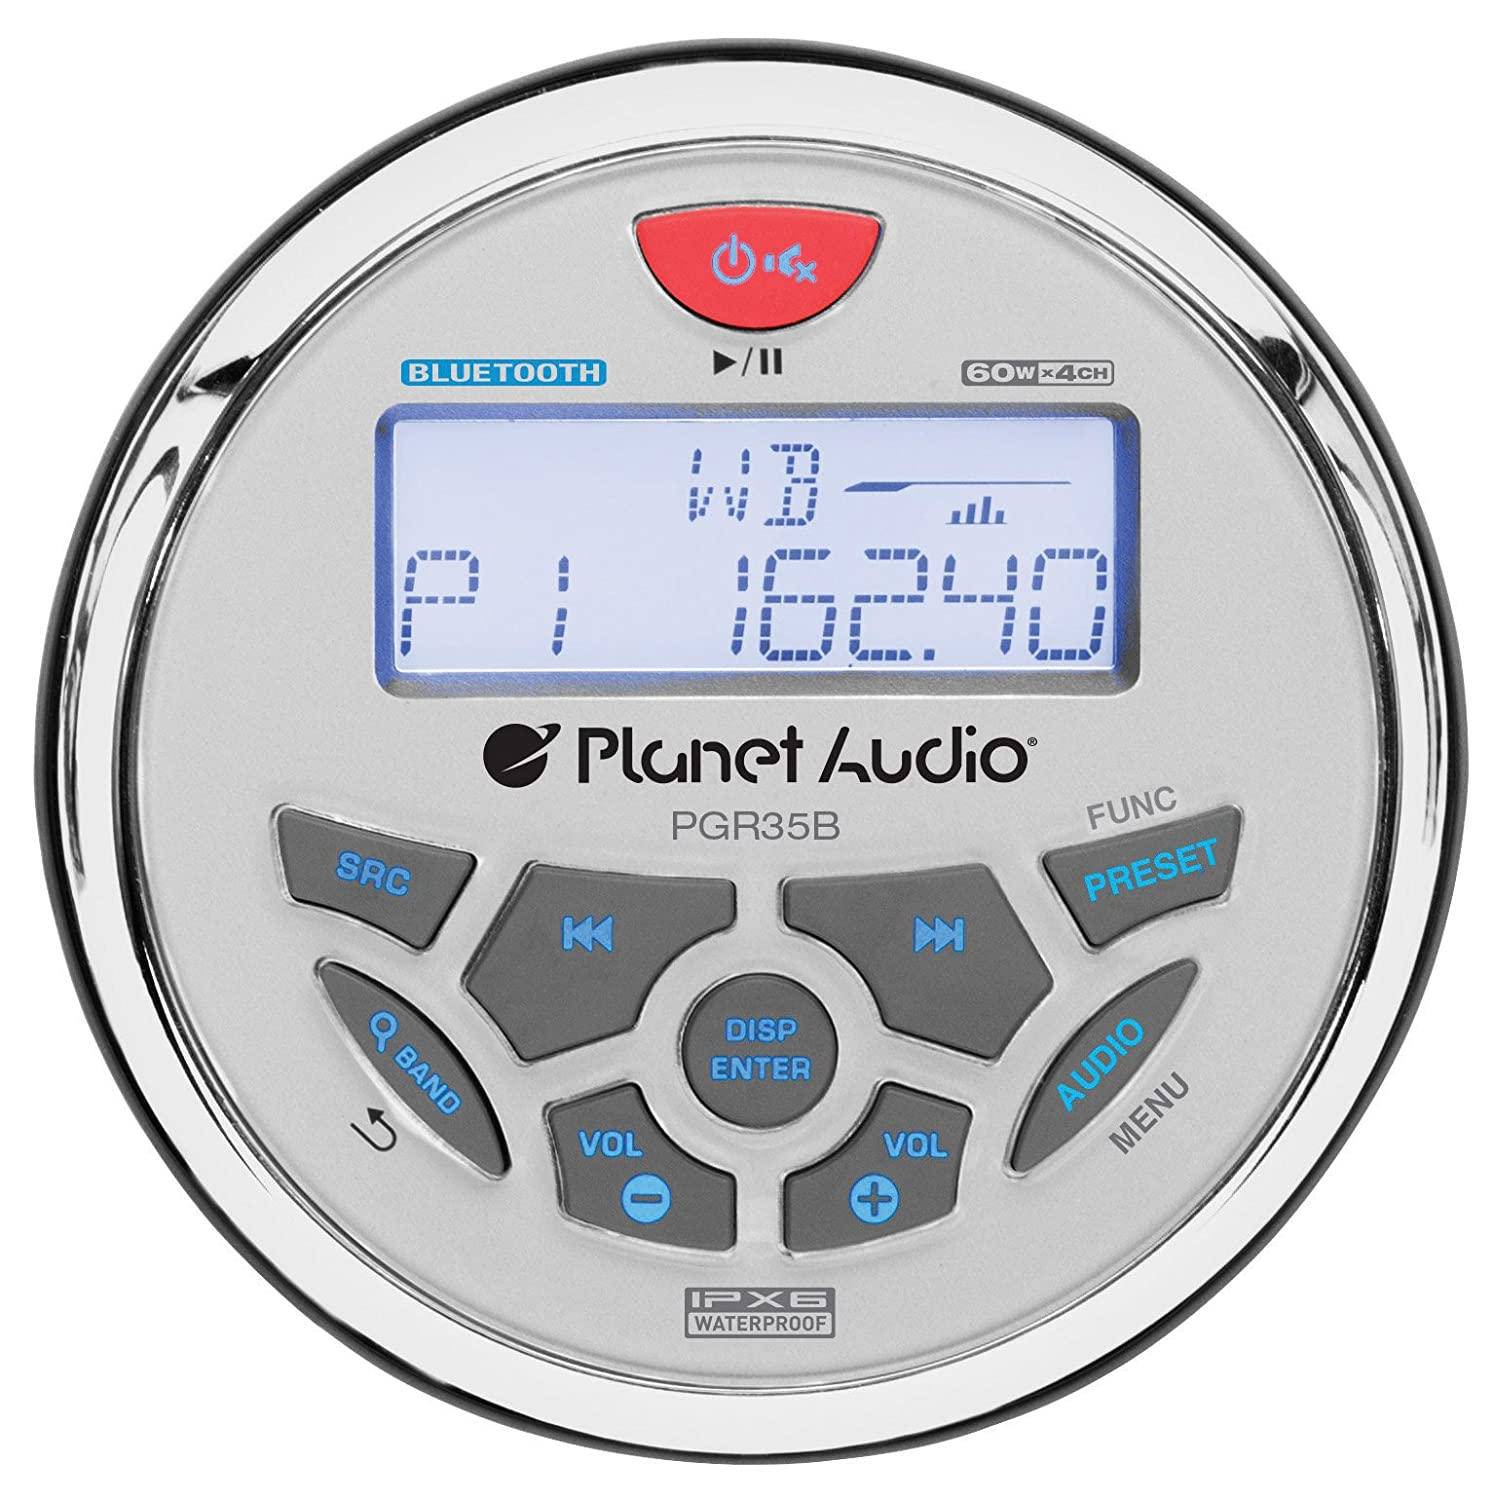 Planet Audio PGR35B IPX6 Rated, Bluetooth, Digital Media MP3 / WMA / USB / AM/FM Compatible, Weather-Proof Marine Stereo, (No CD Player)